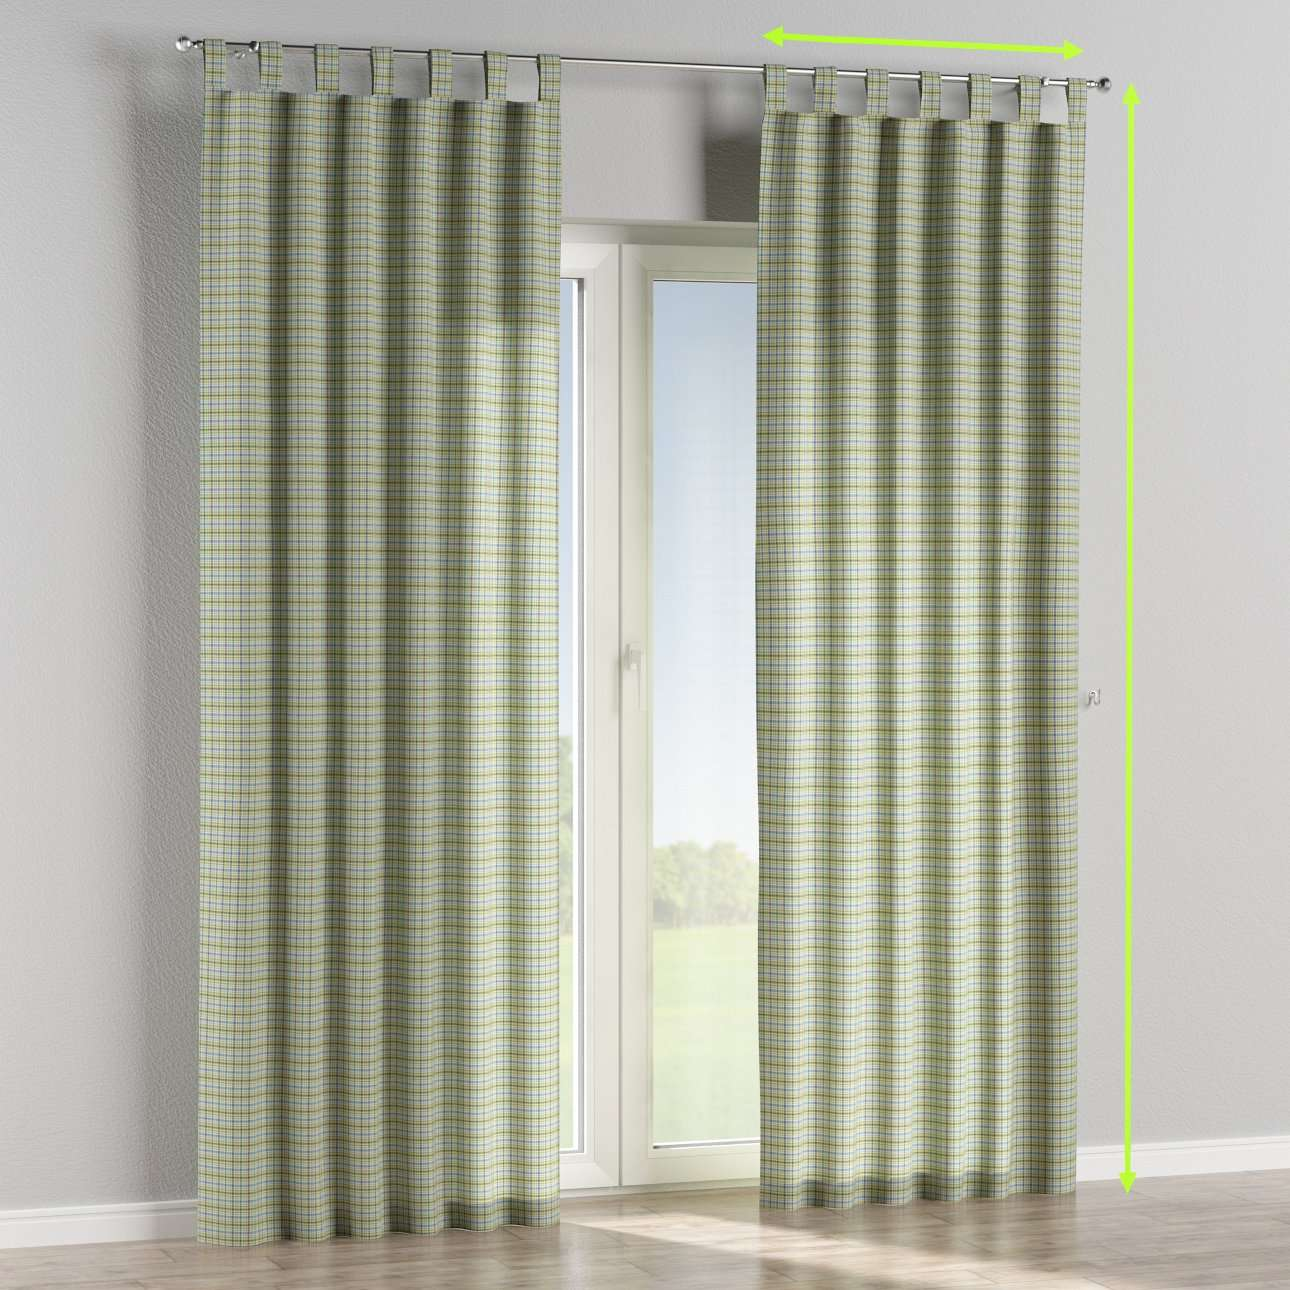 Tab top lined curtains in collection Bristol, fabric: 126-69